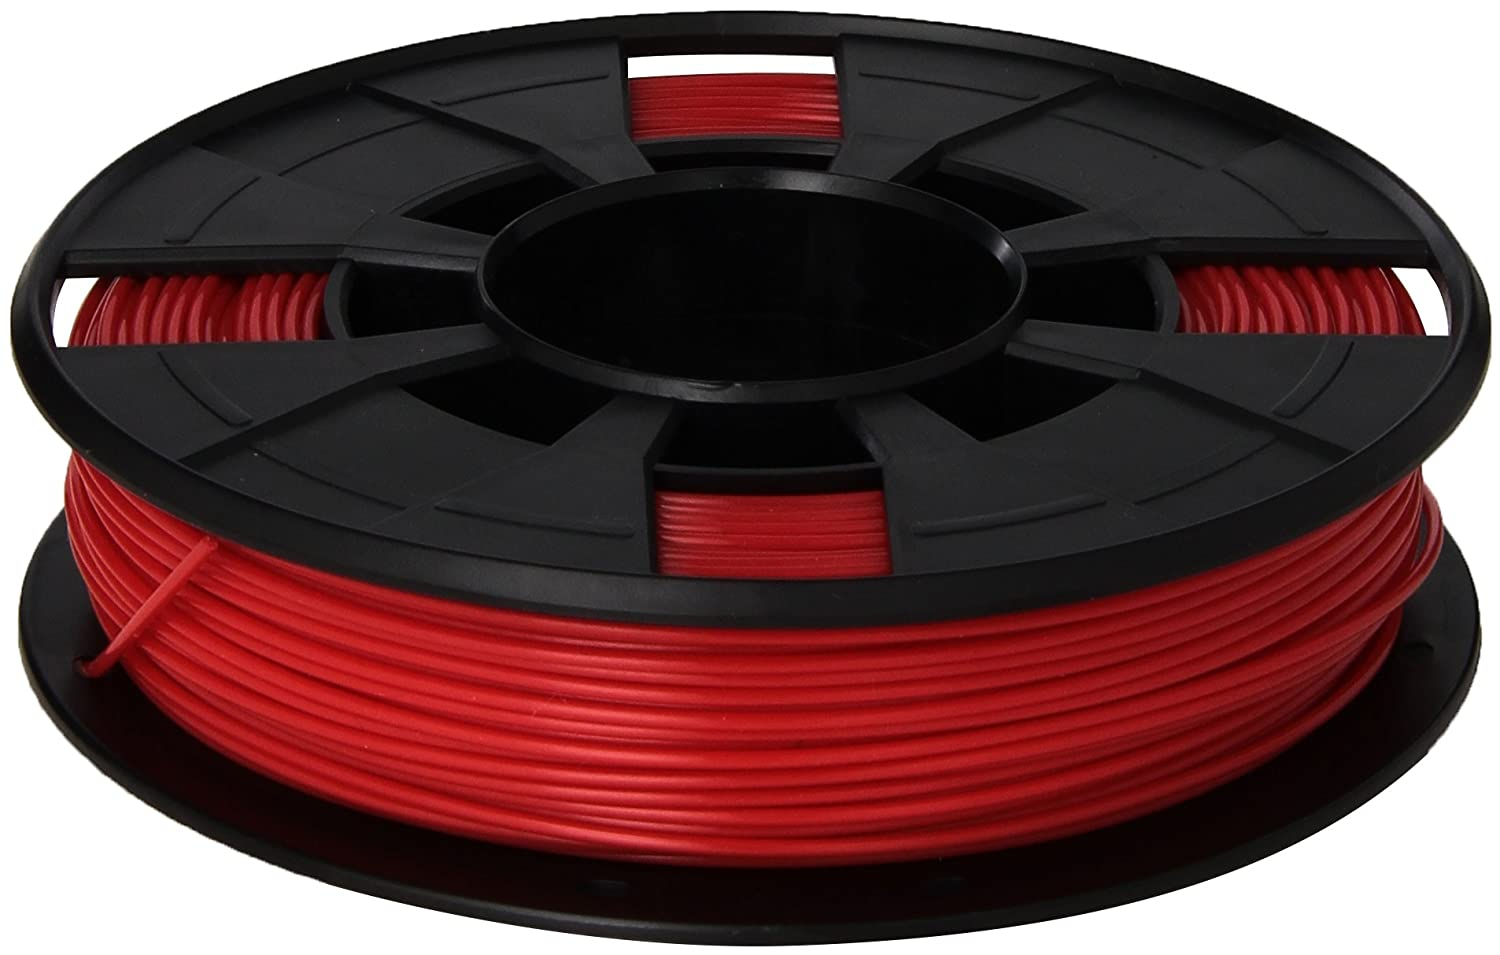 MakerBot PLA Filament 1.75 mm Red Small security List price Diameter Spool